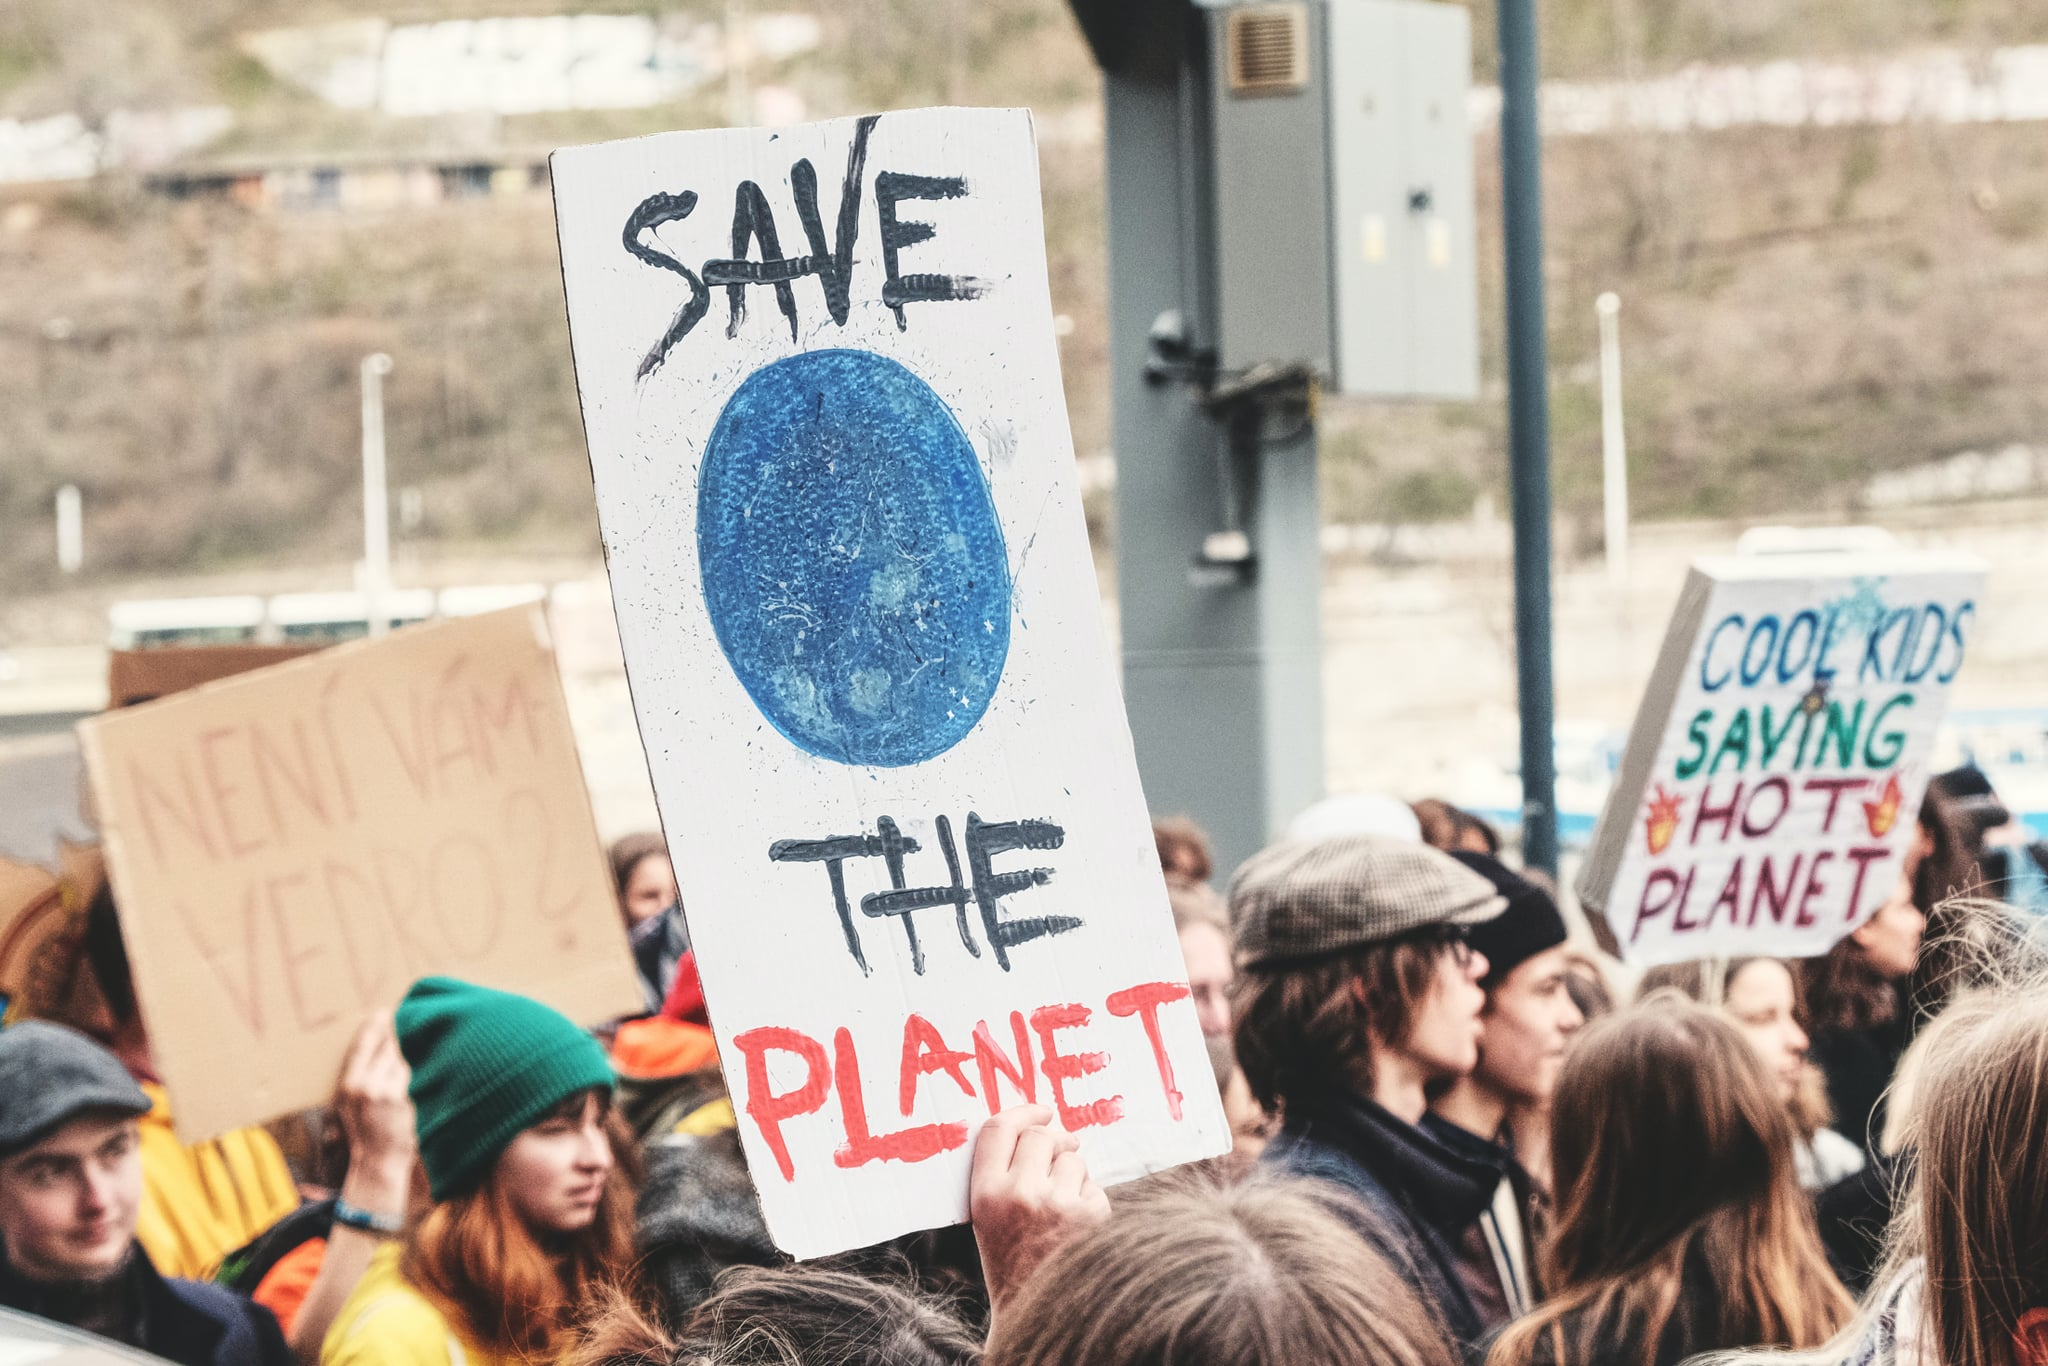 Pexels/Tomas Ryant https://www.pexels.com/photo/save-the-planet-signage-2852737/